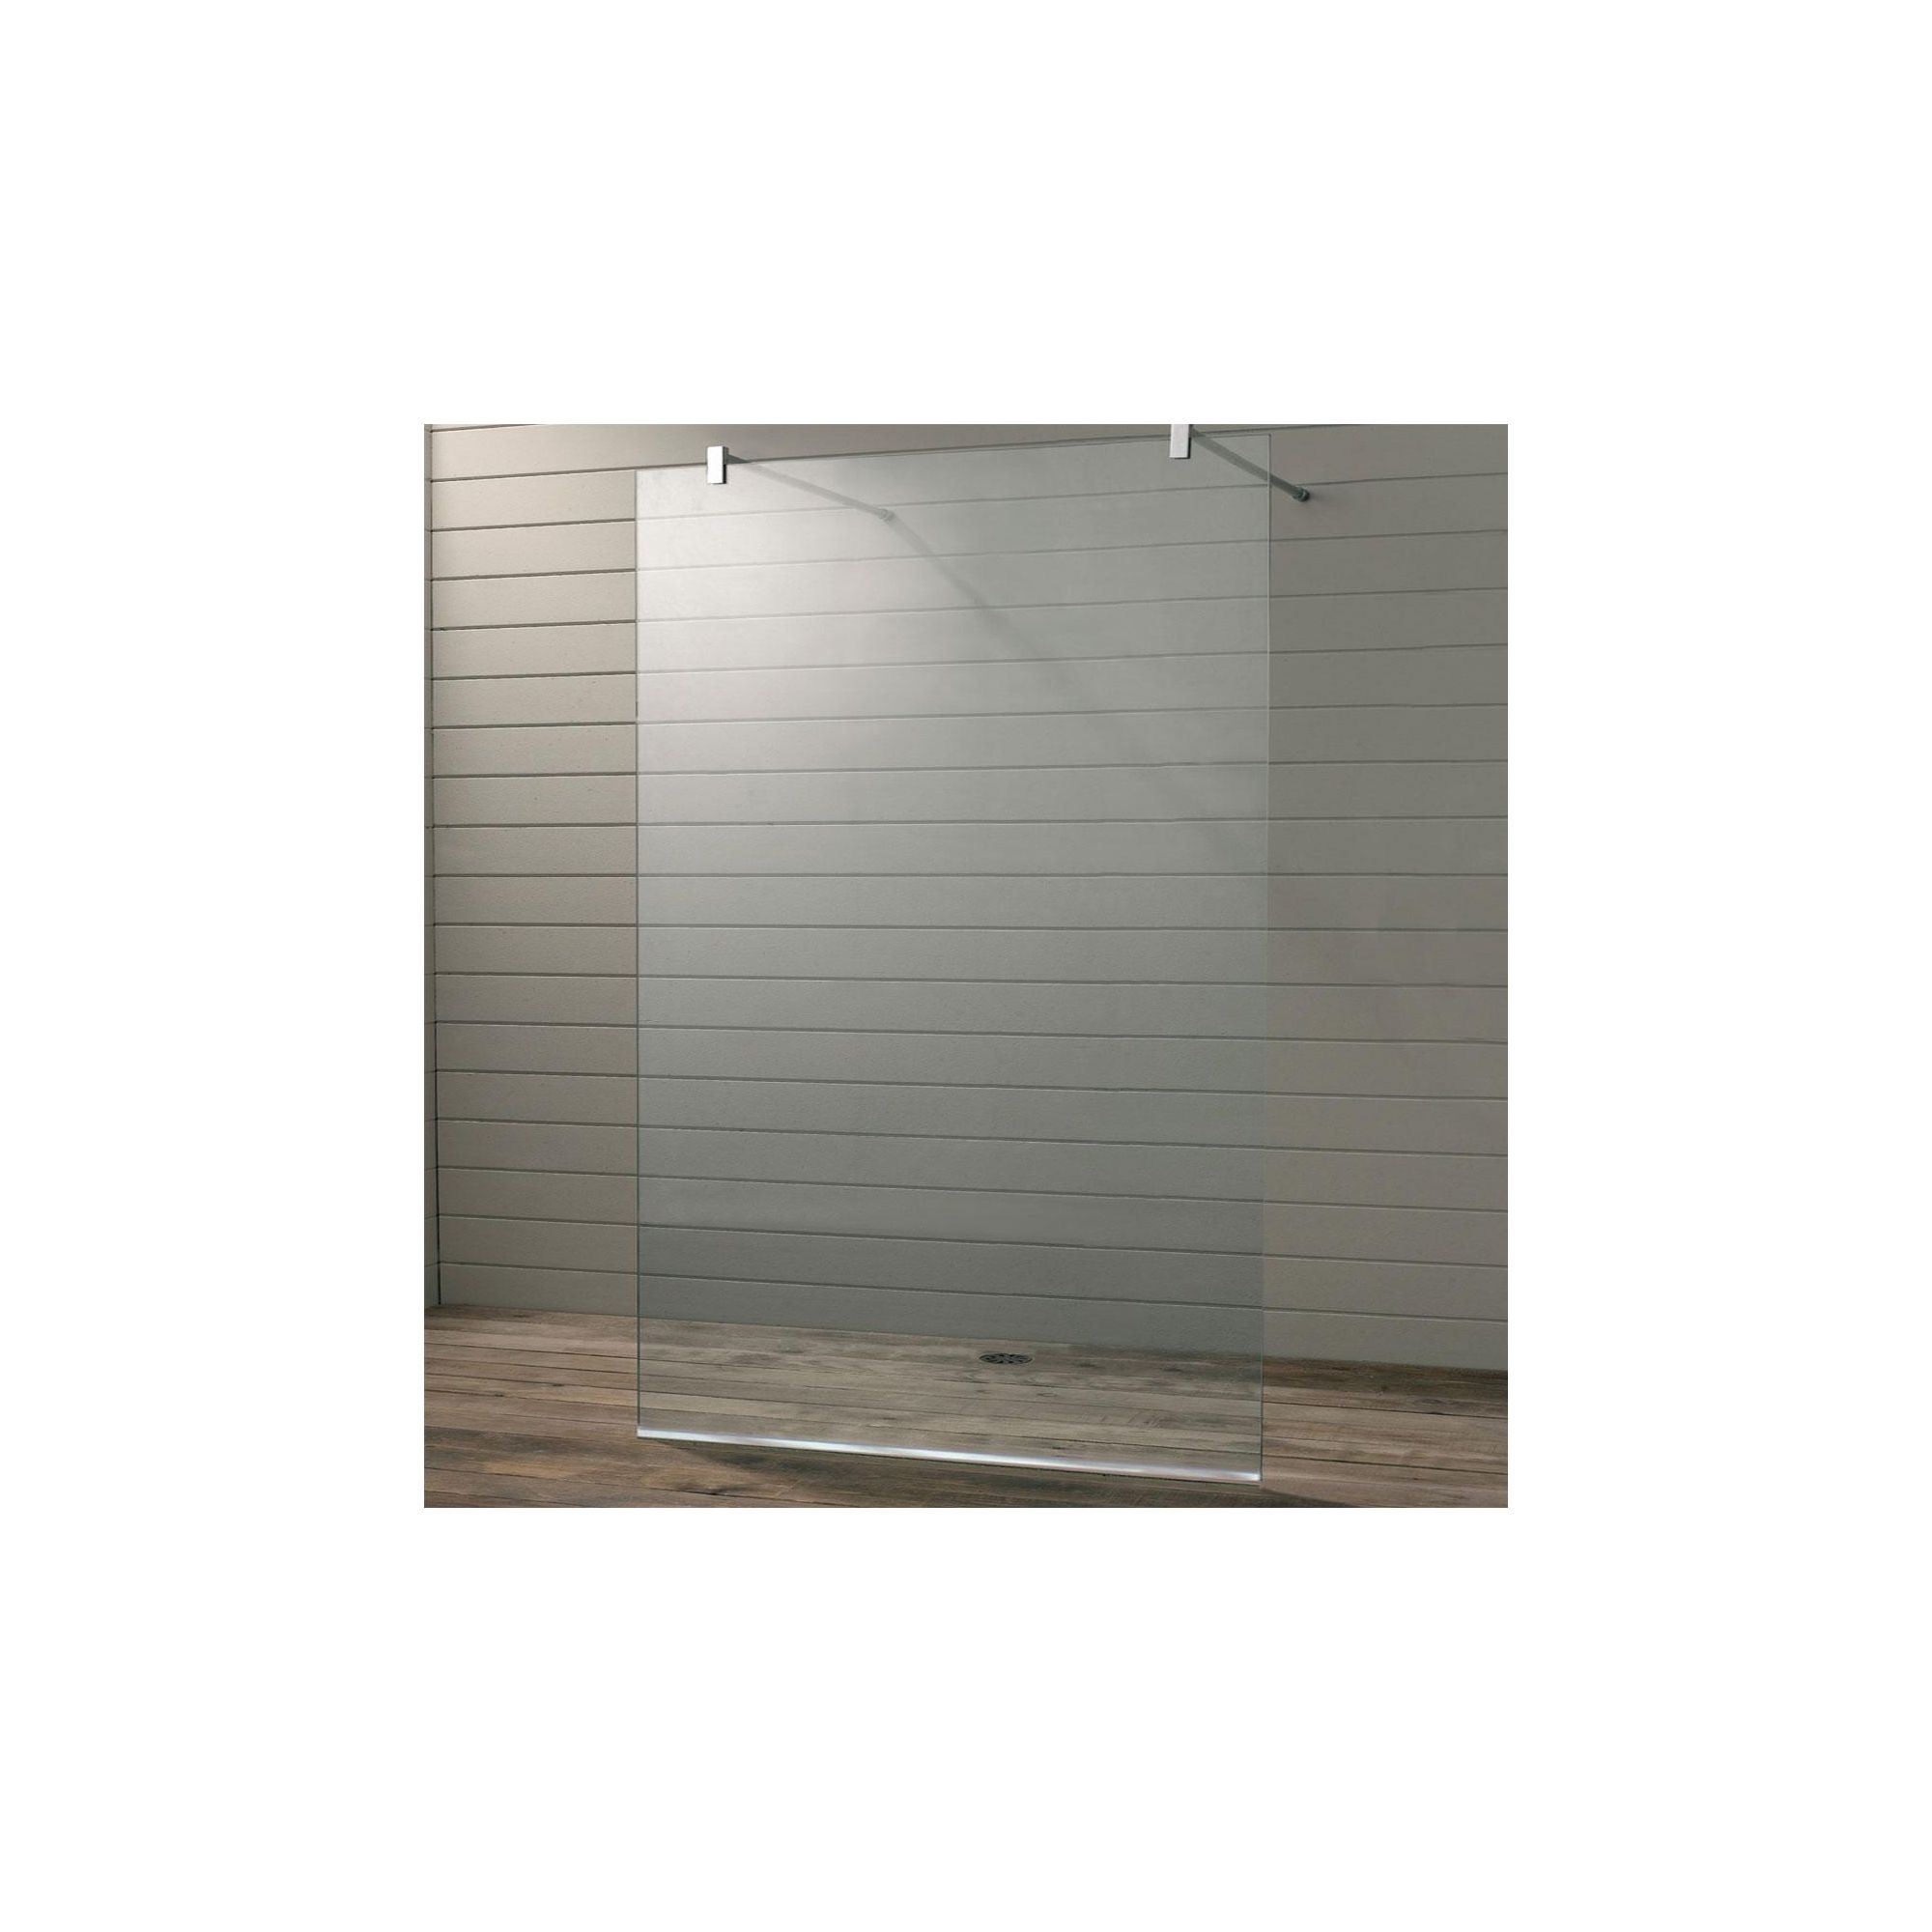 Duchy Premium Wet Room Glass Shower Panel, 800mm Wide, 10mm Glass at Tesco Direct